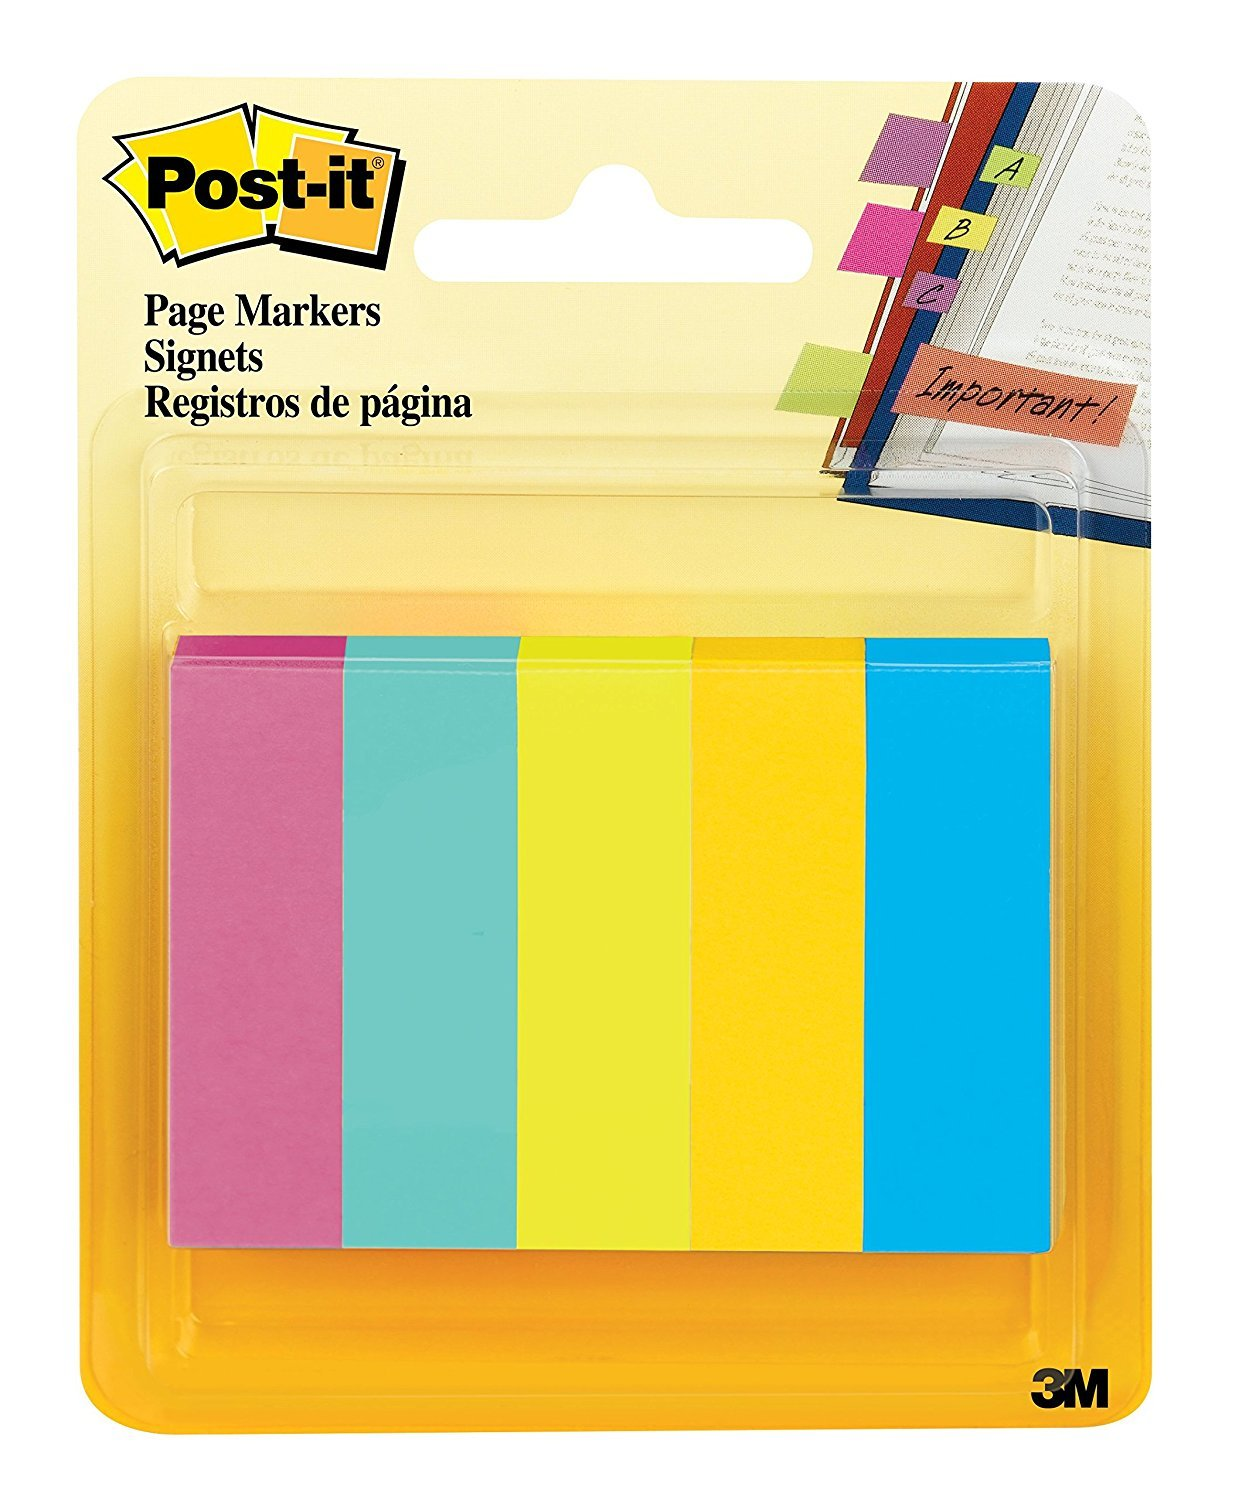 Post-it Page Markers, Assorted Fluorescent Colors , 1/2 in x 1 3/4 in, 50 Sheets/Pad, 4 Packs of 5 Pads/Pack (670-5AF-4)